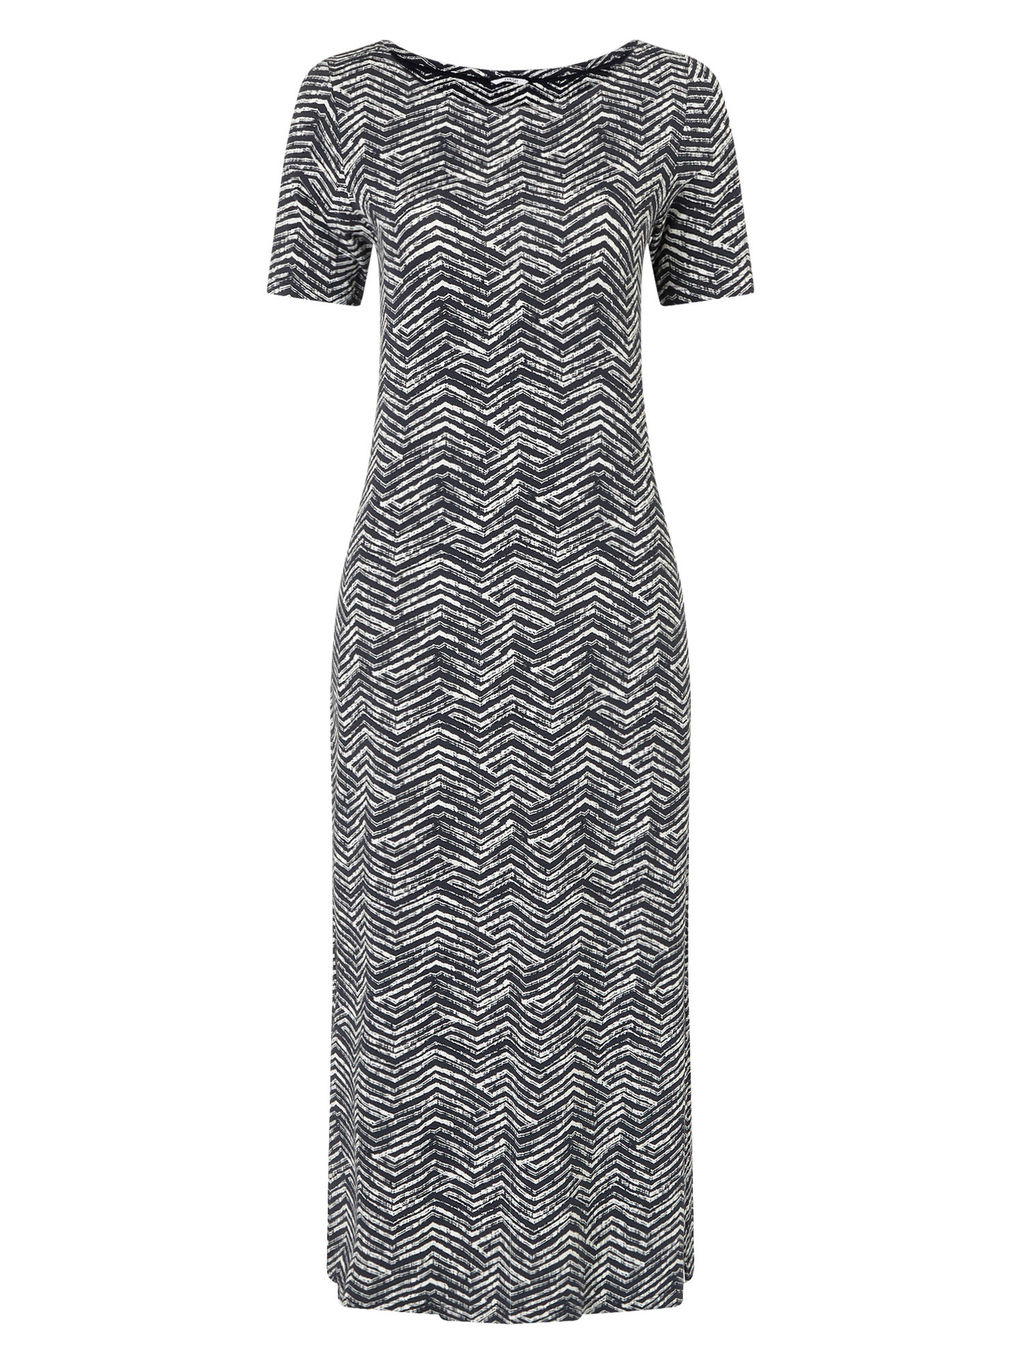 Zig Zag Print Maxi Dress - style: shift; length: calf length; secondary colour: white; predominant colour: black; fit: body skimming; fibres: viscose/rayon - stretch; neckline: crew; sleeve length: short sleeve; sleeve style: standard; pattern type: fabric; pattern: patterned/print; texture group: jersey - stretchy/drapey; occasions: creative work; season: s/s 2016; wardrobe: highlight